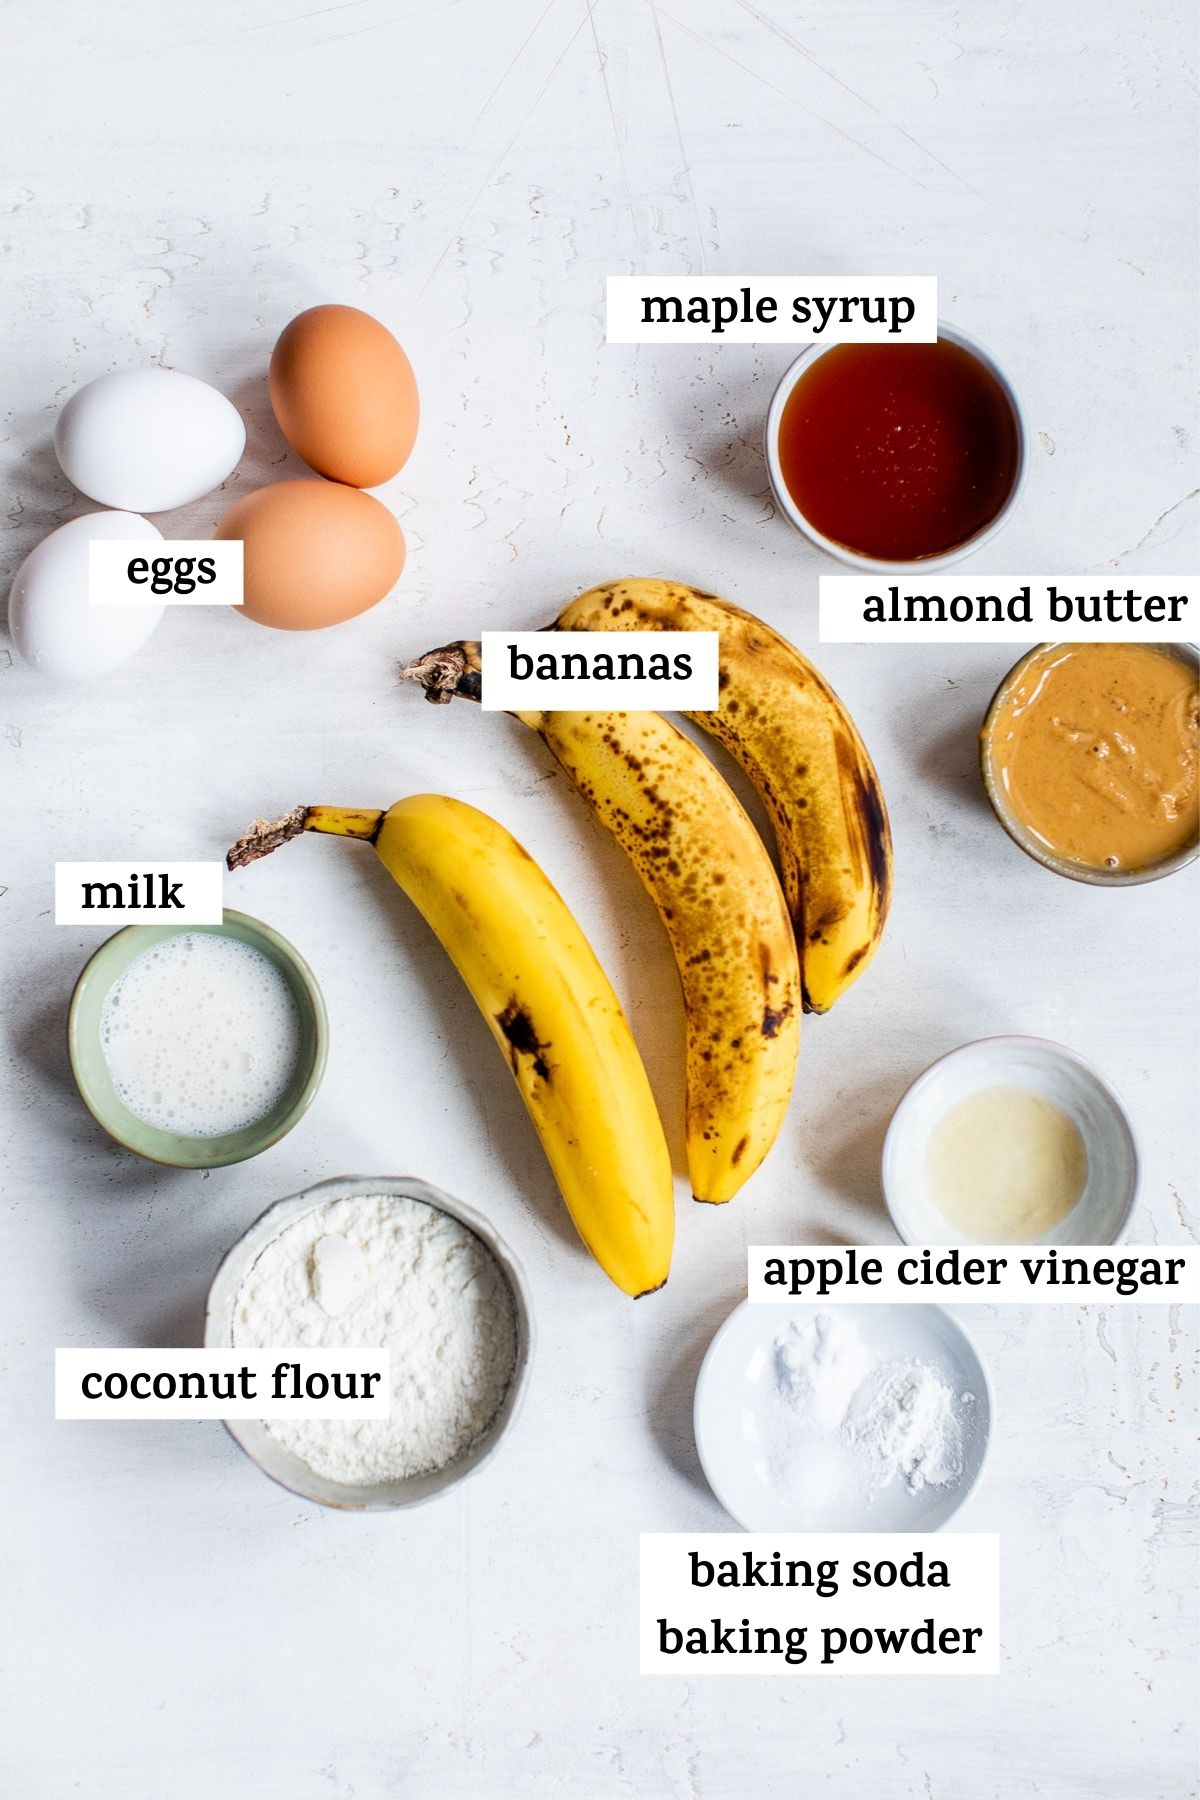 ripe bananas and other ingredients on a table with text overlay